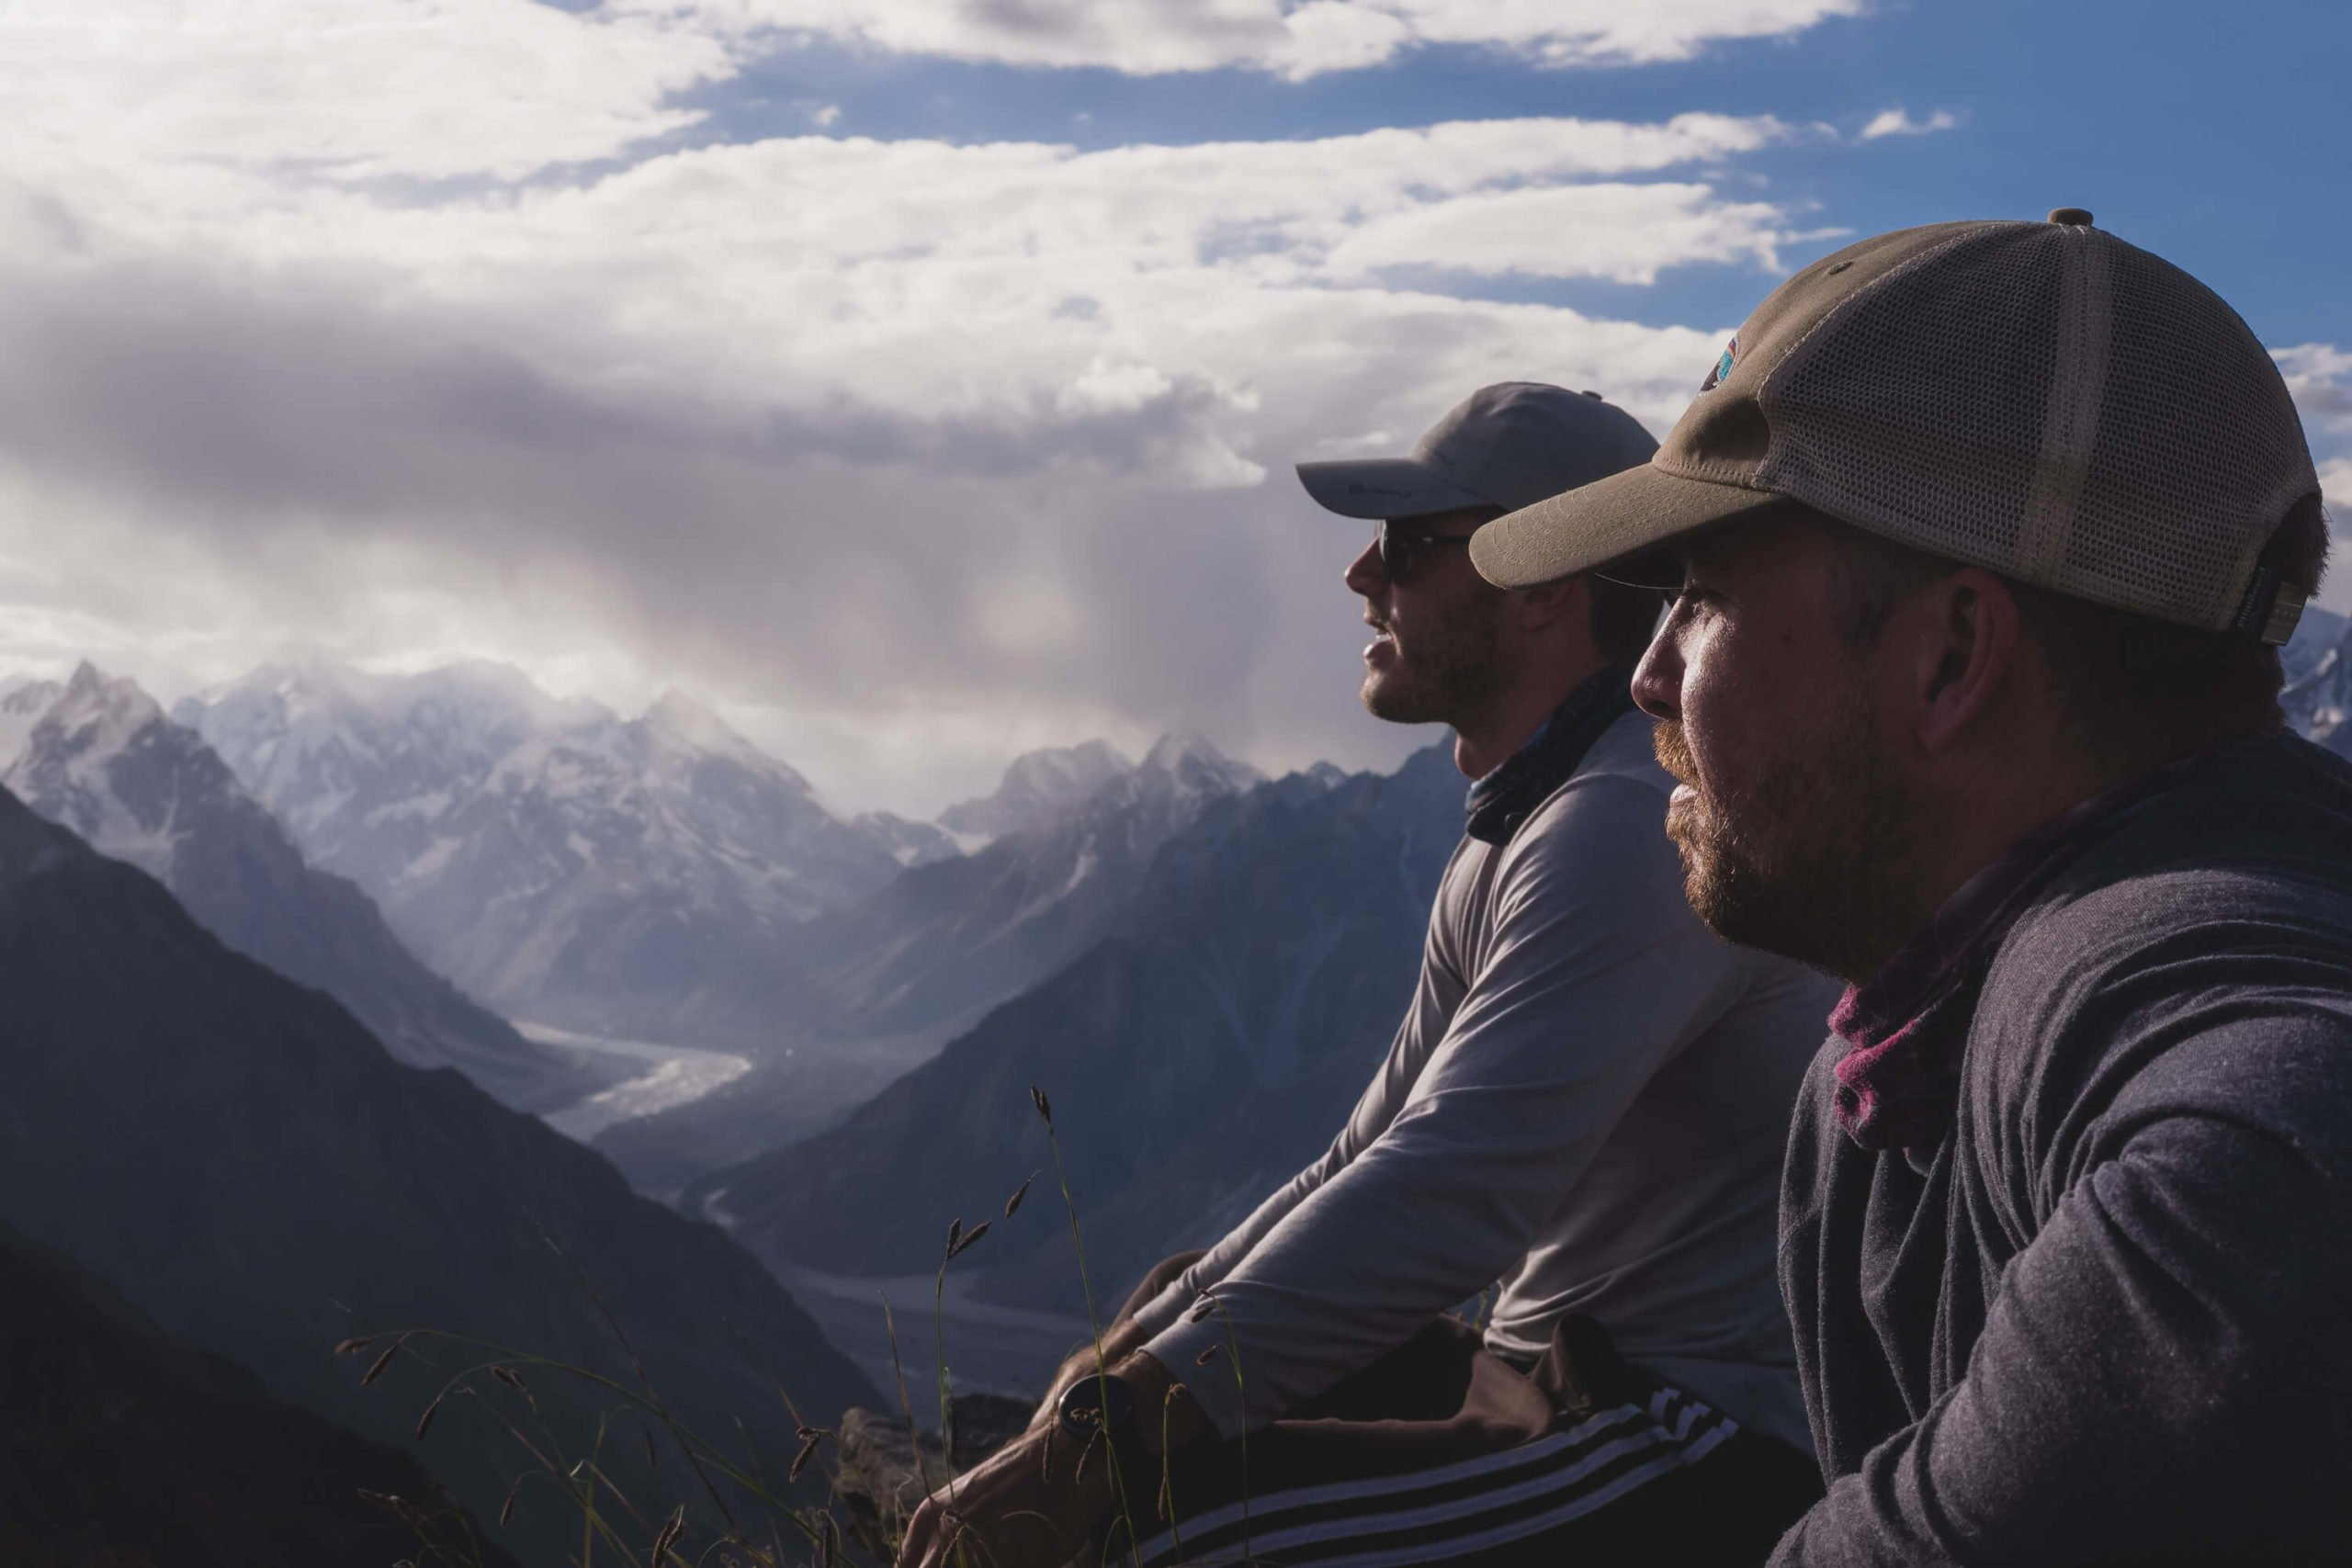 Will Hatton contemplating the reasons to travel again in 2021 at a viewpoint in the Karakoram mountains